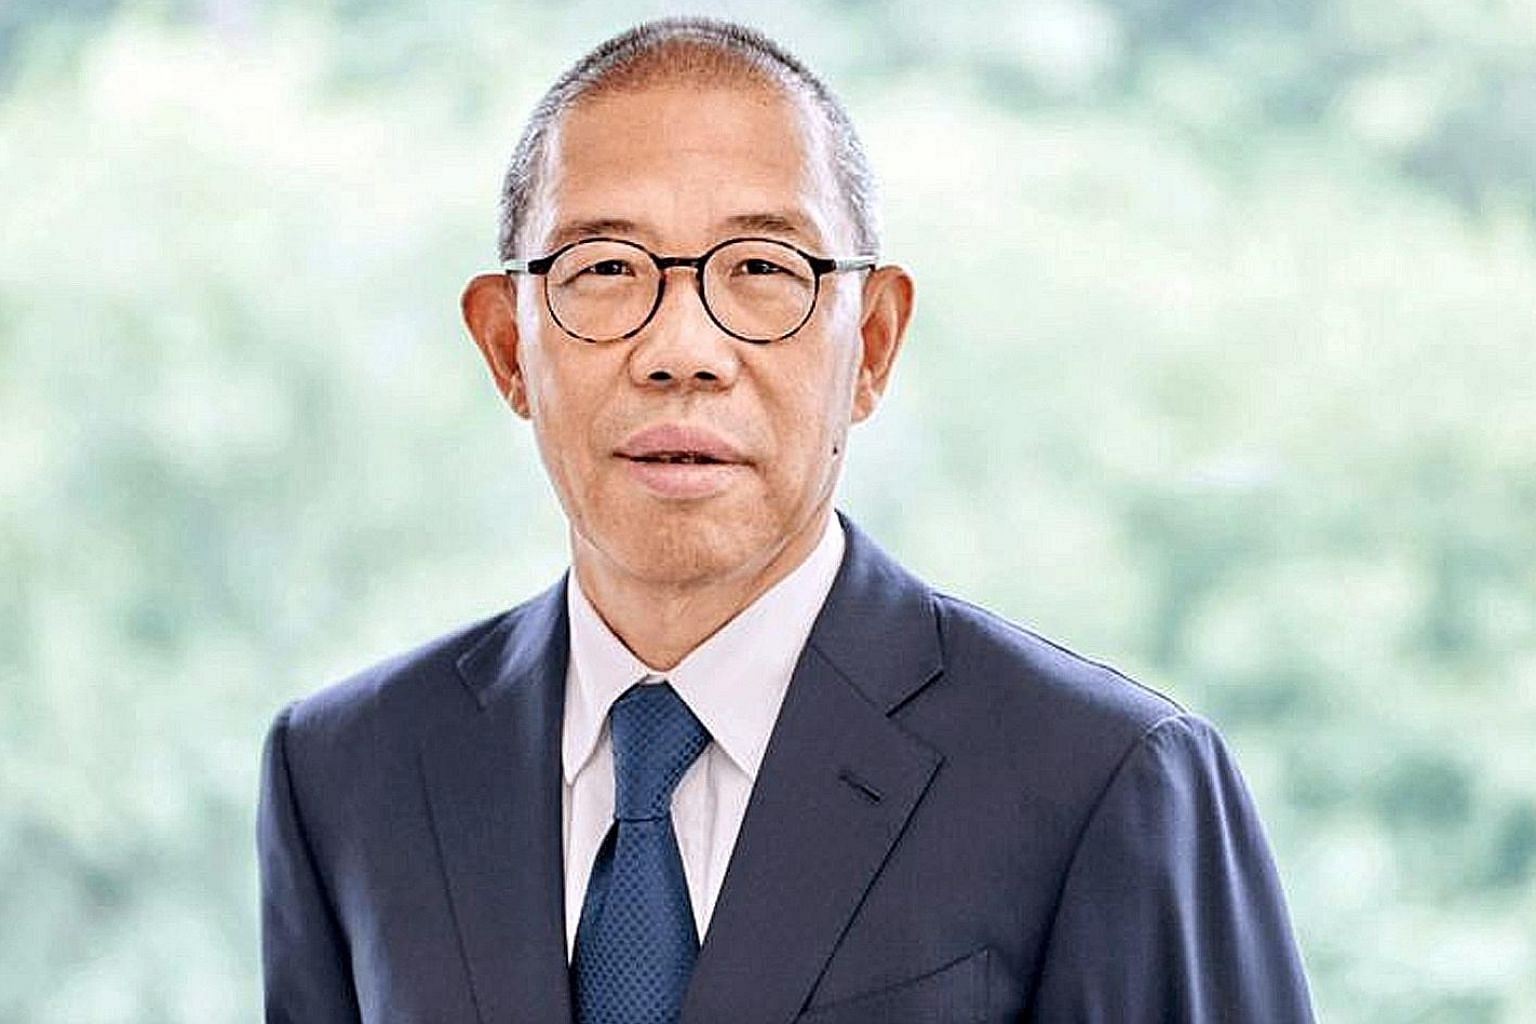 Tycoon Zhong Shanshan is now China's richest person, according to the Bloomberg Billionaires Index.